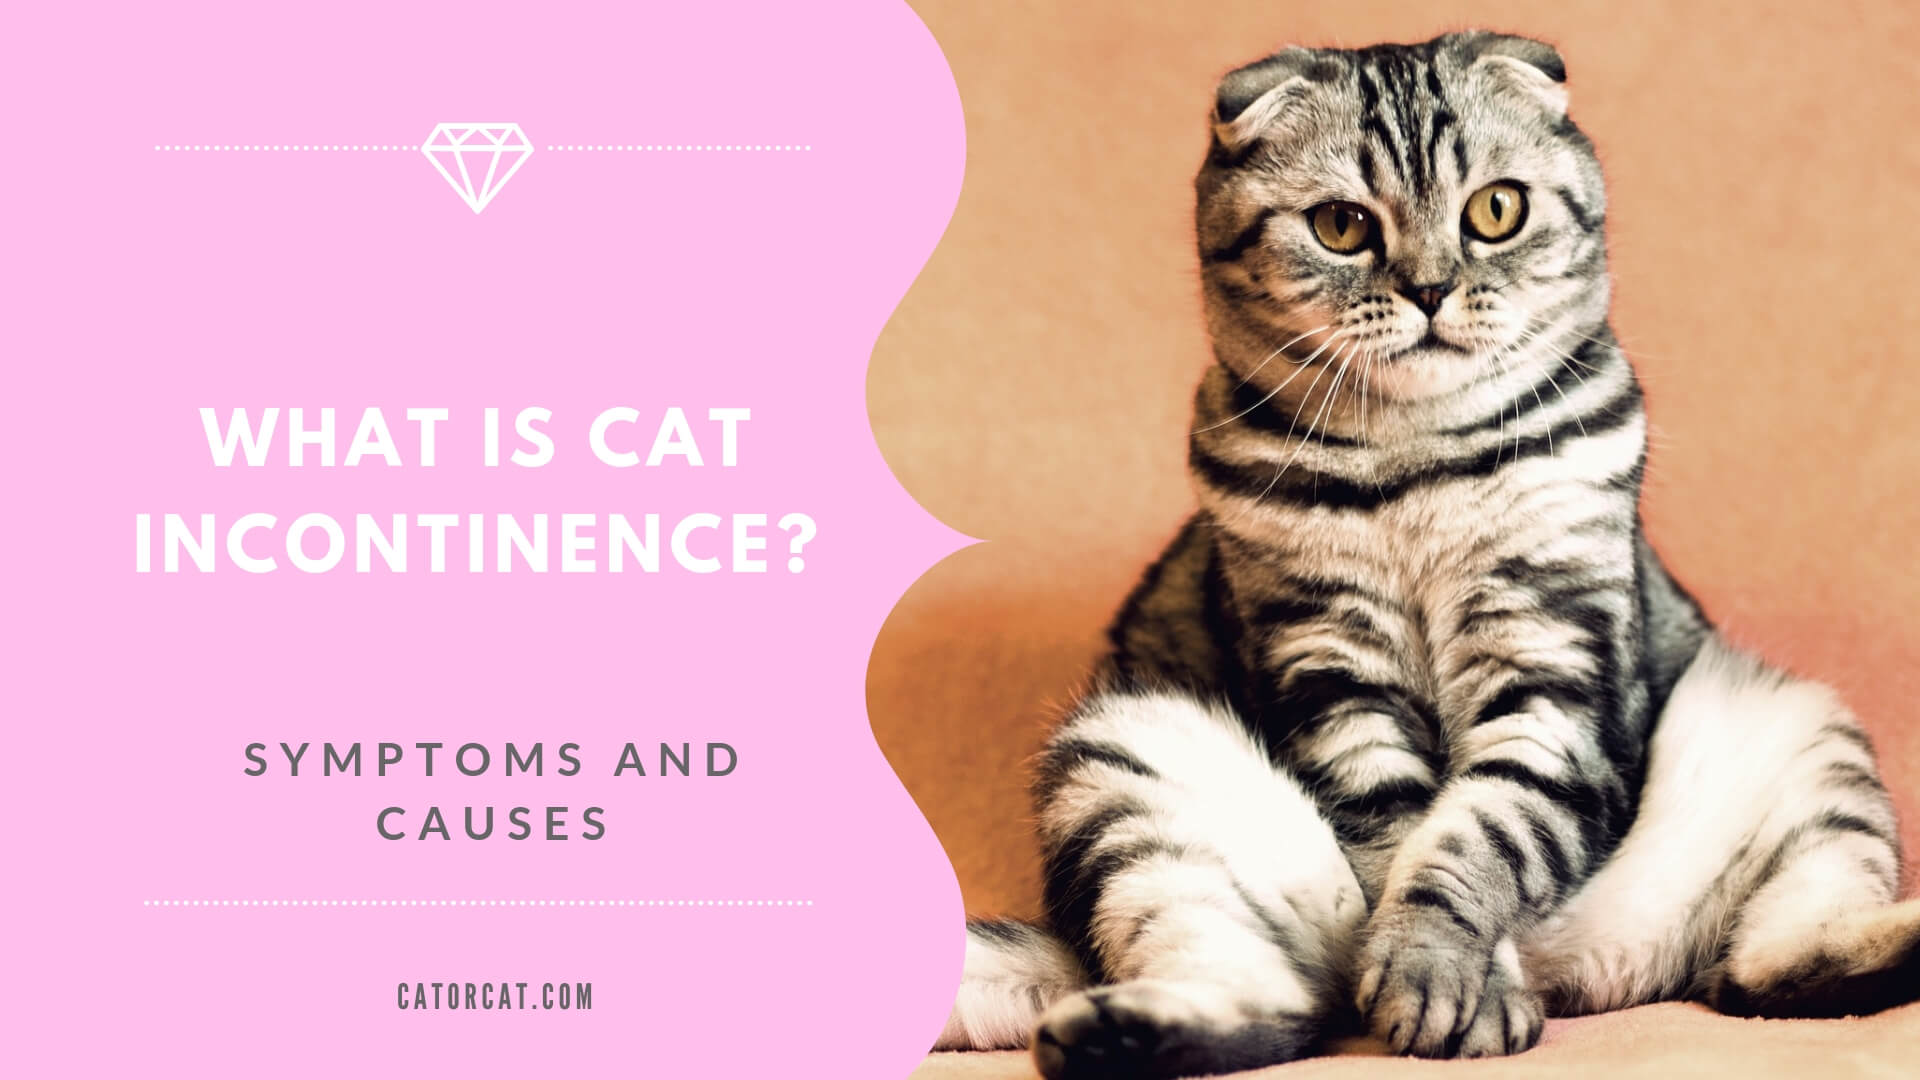 Cat Incontinence